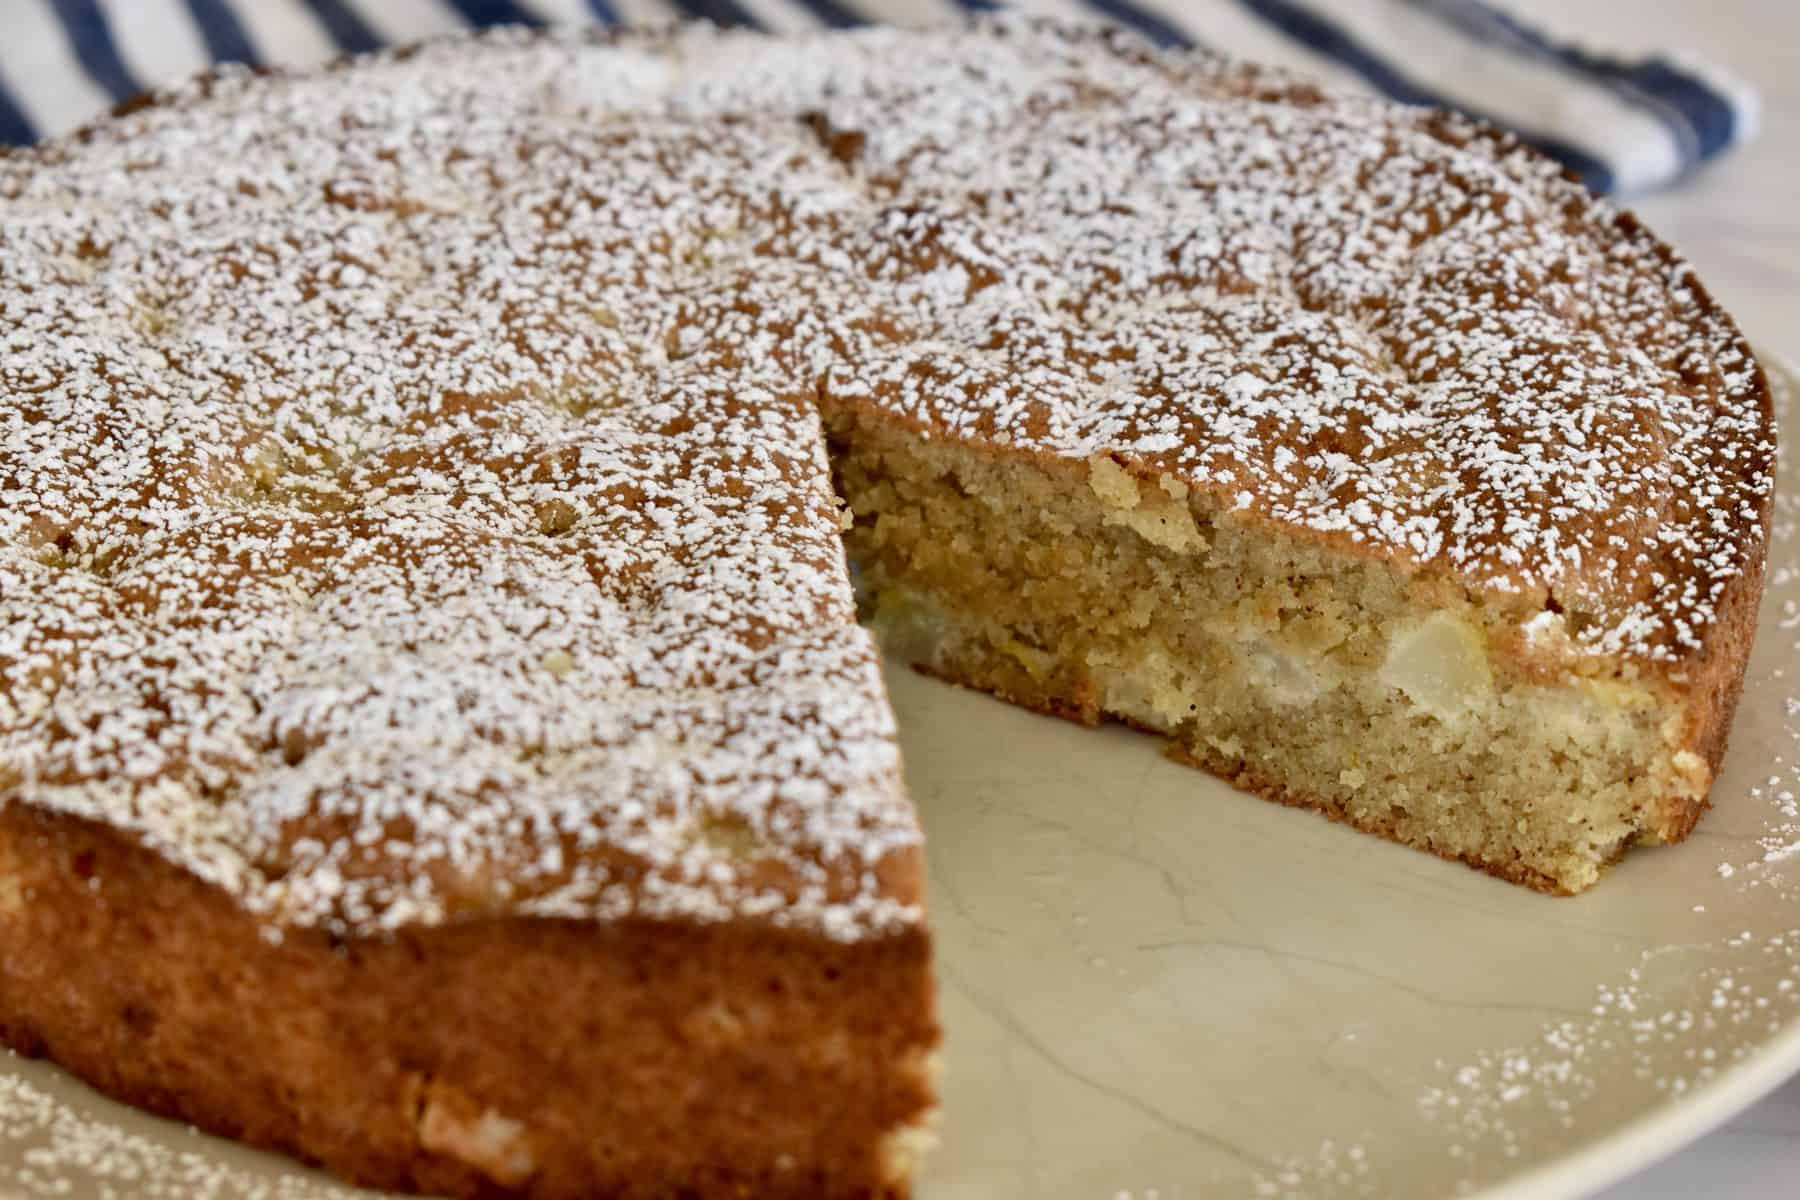 Almond Flour Pear Cake on a plate with a slice taken out of it.